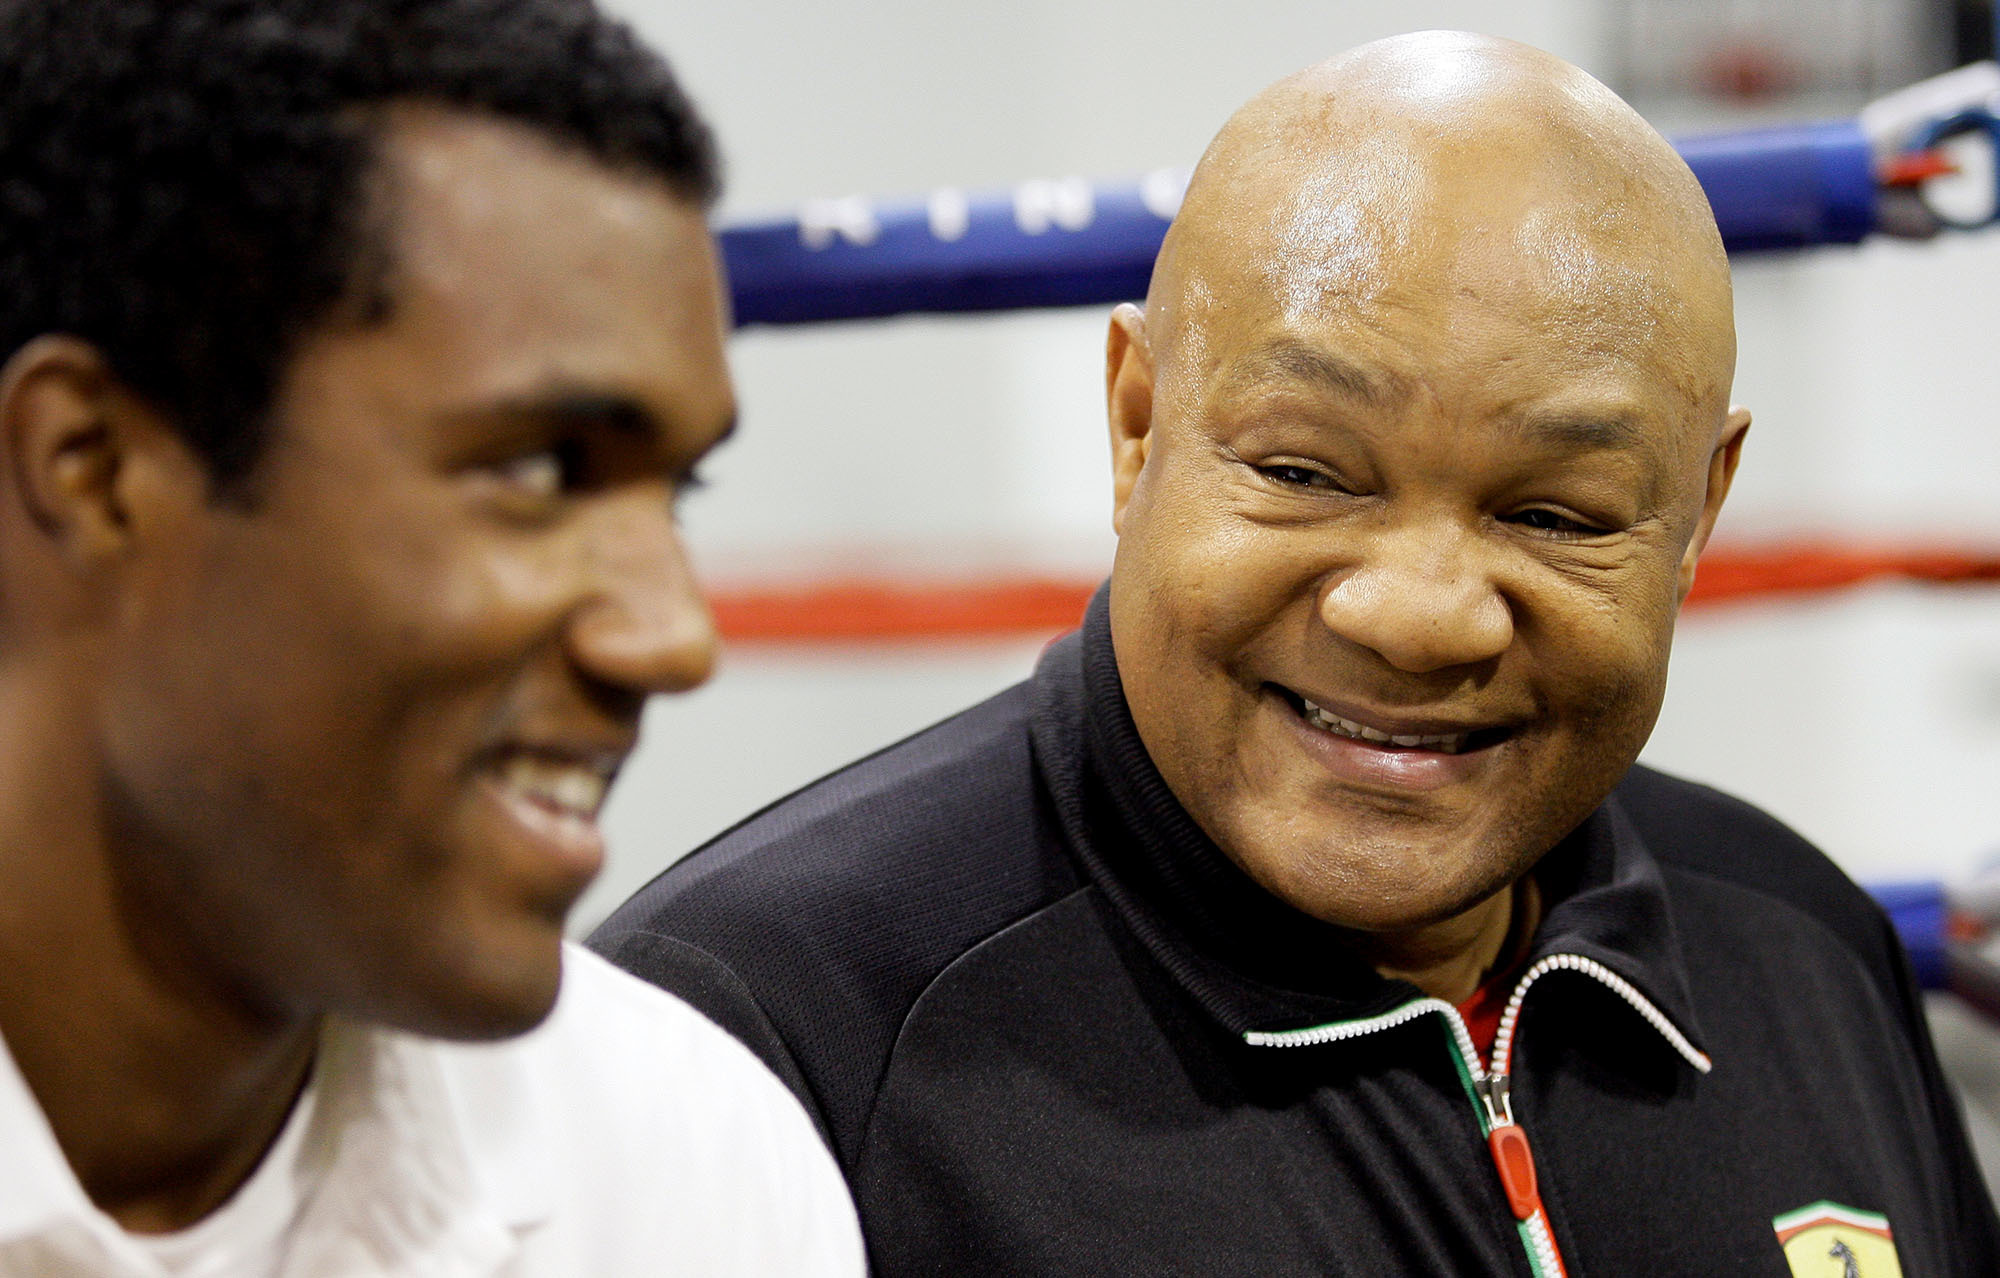 George Foreman (right) smiles as he talks about his son, George Foreman III (left) in Houston in 2009. 'I was too focused on the one-two,' he says of his early days in the ring. (David J. Phillip/AP)